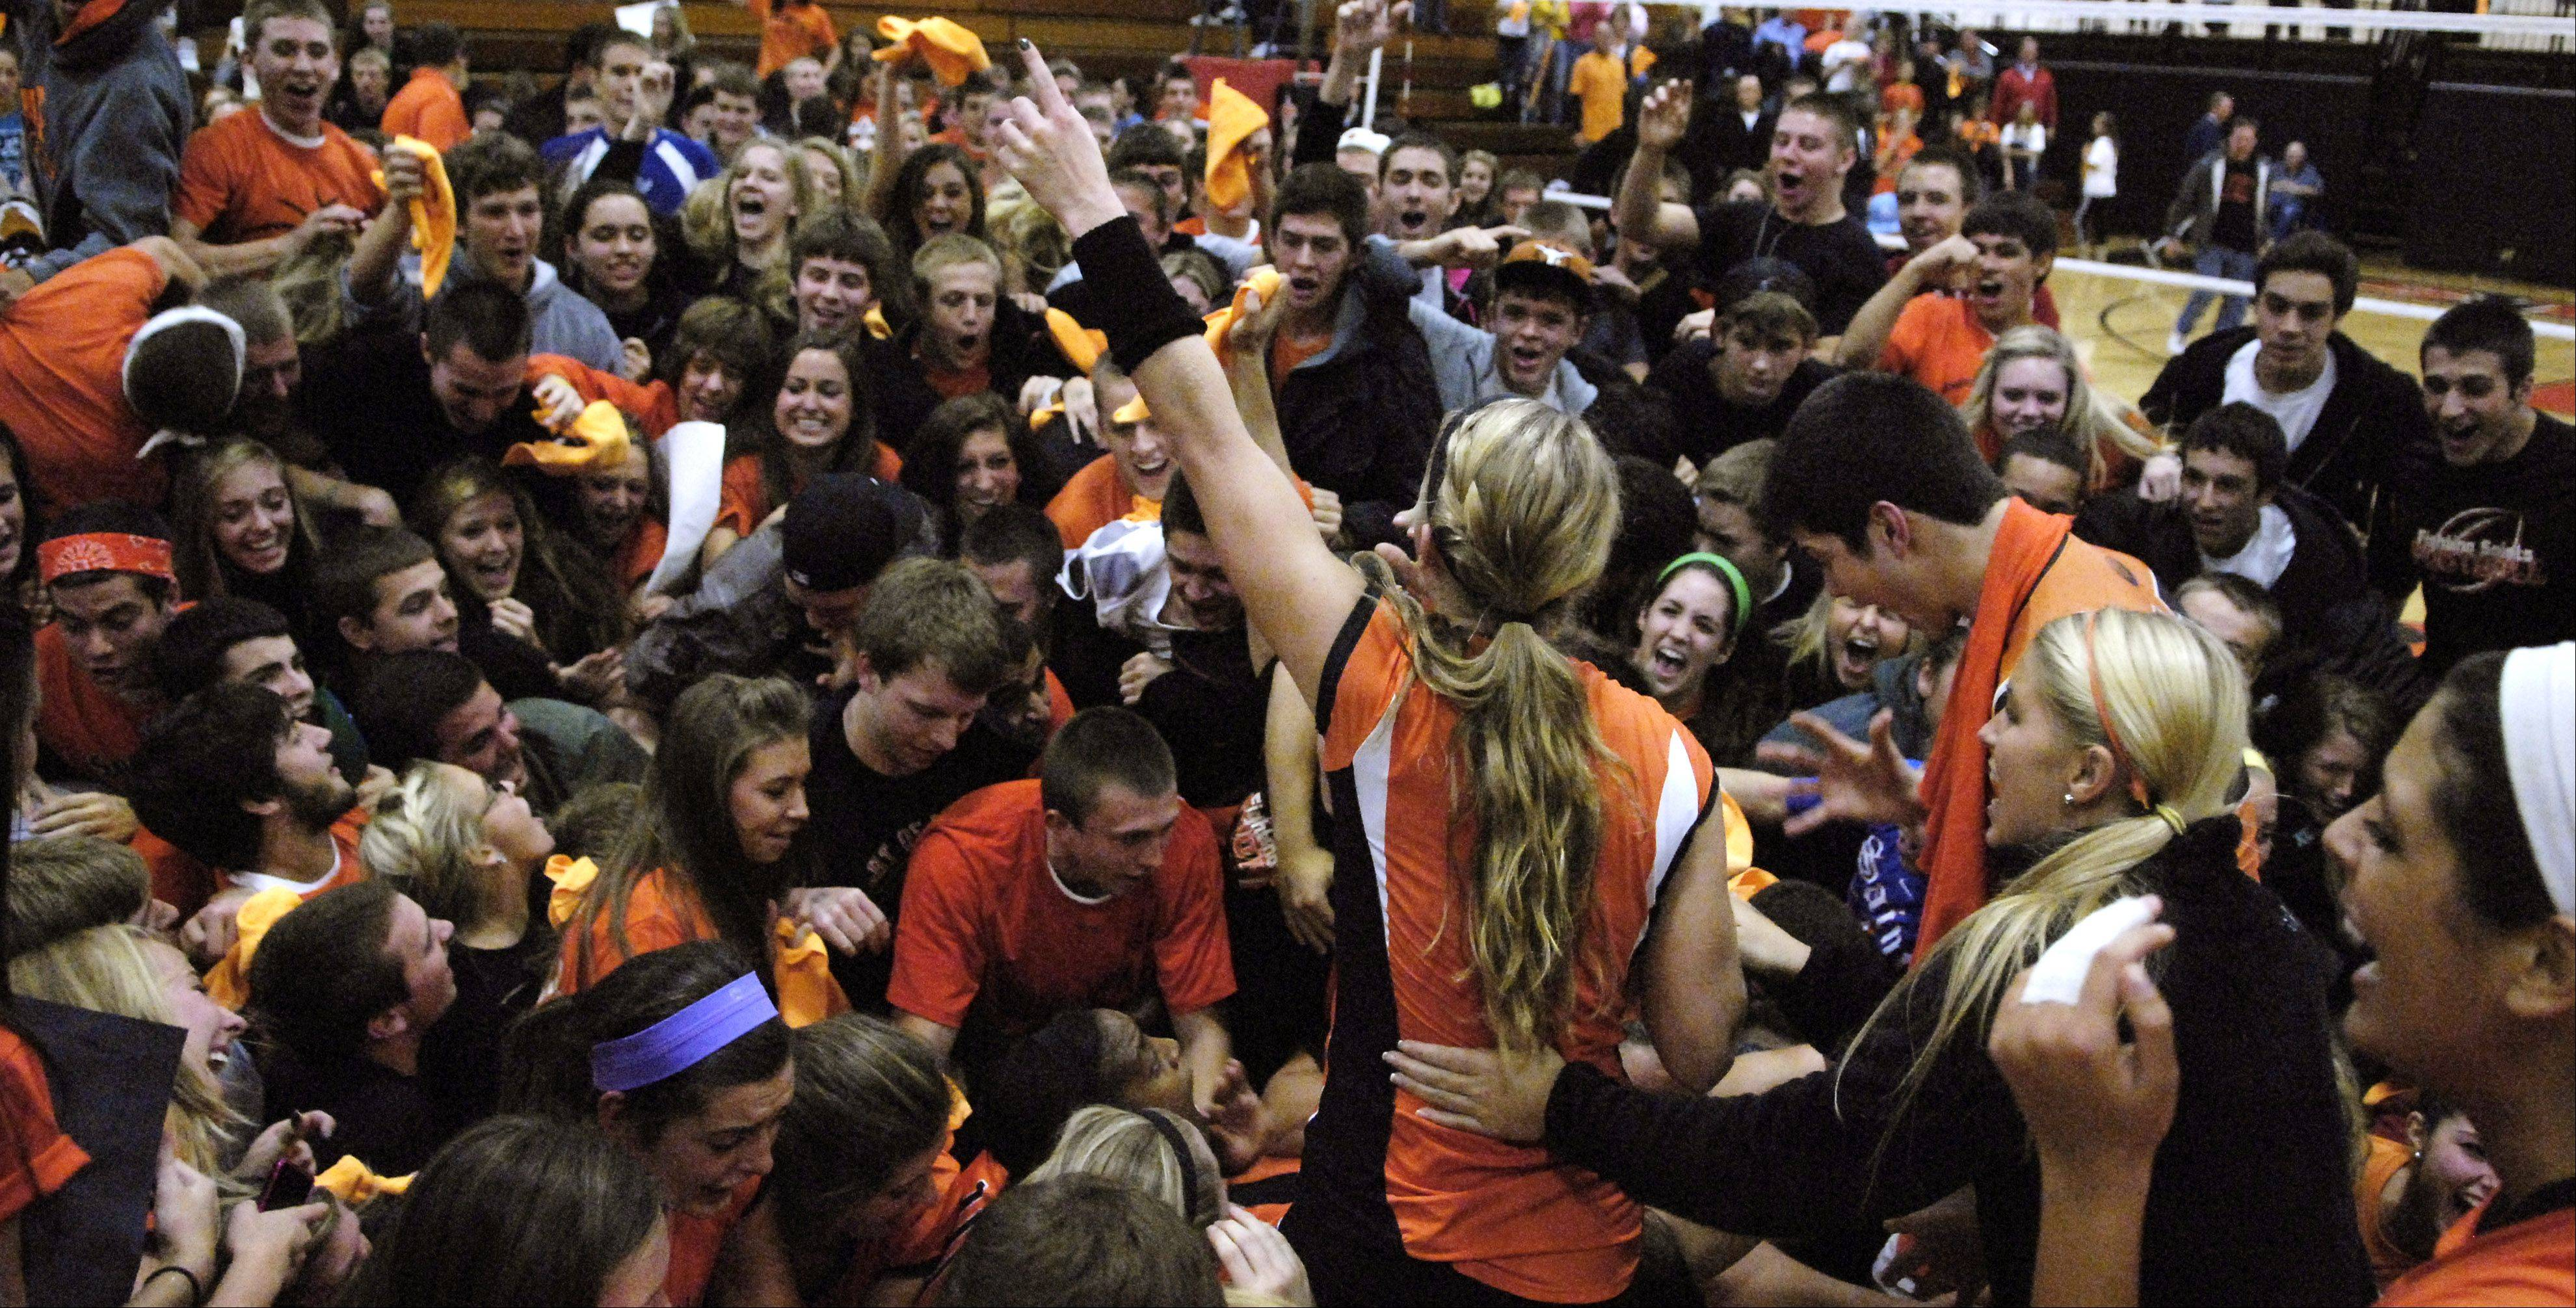 St charles east students flood the court after the saints won thursdays sectional final against york in st charles